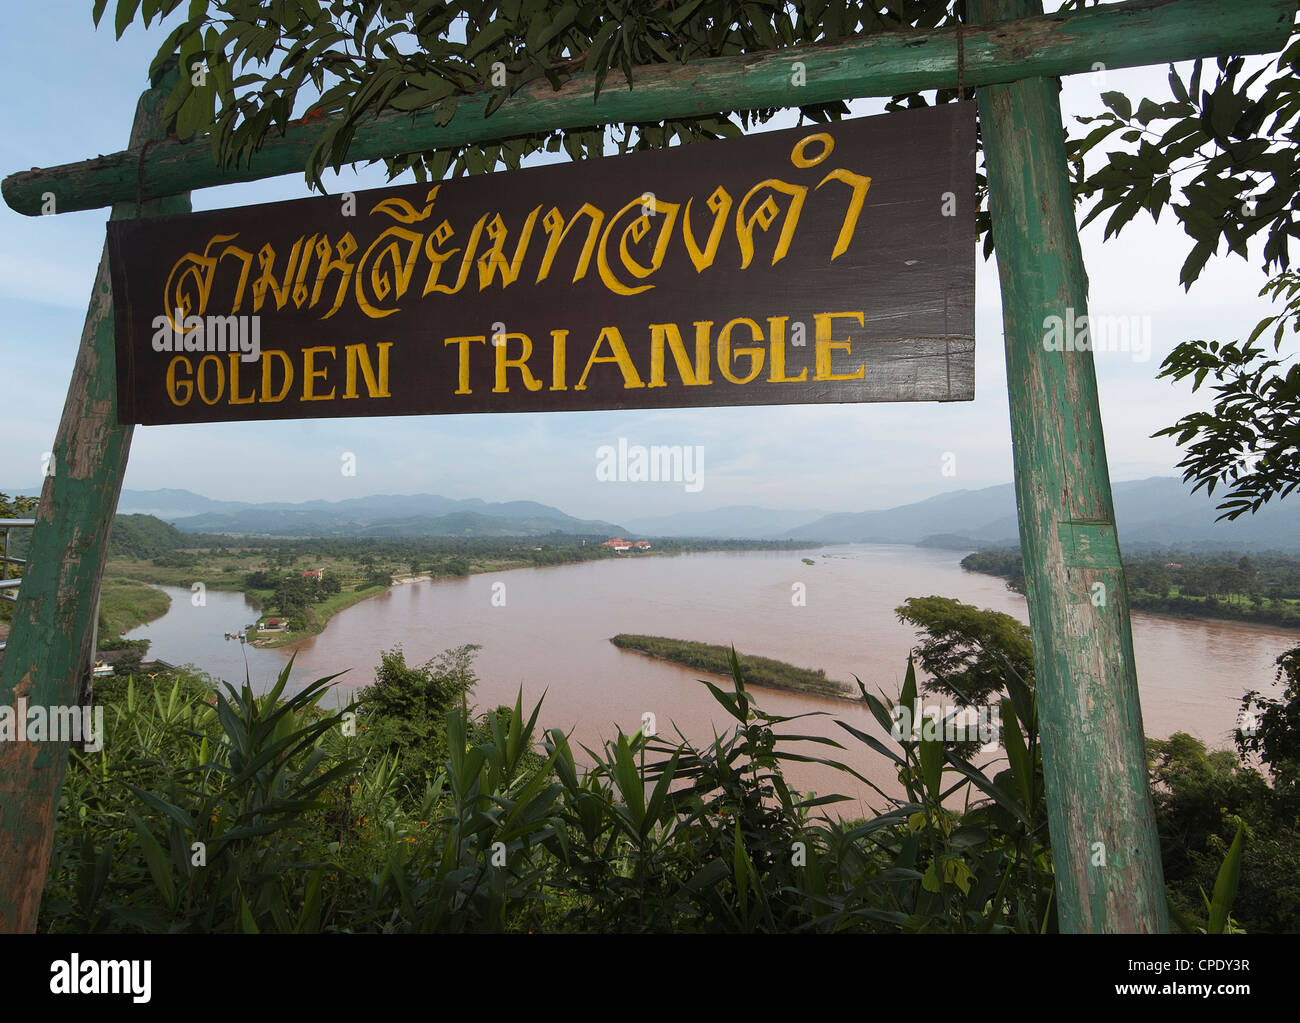 Elk208-5337 Thailand, Chiang Saen, Golden Triangle sign with Mekong River - Stock Image